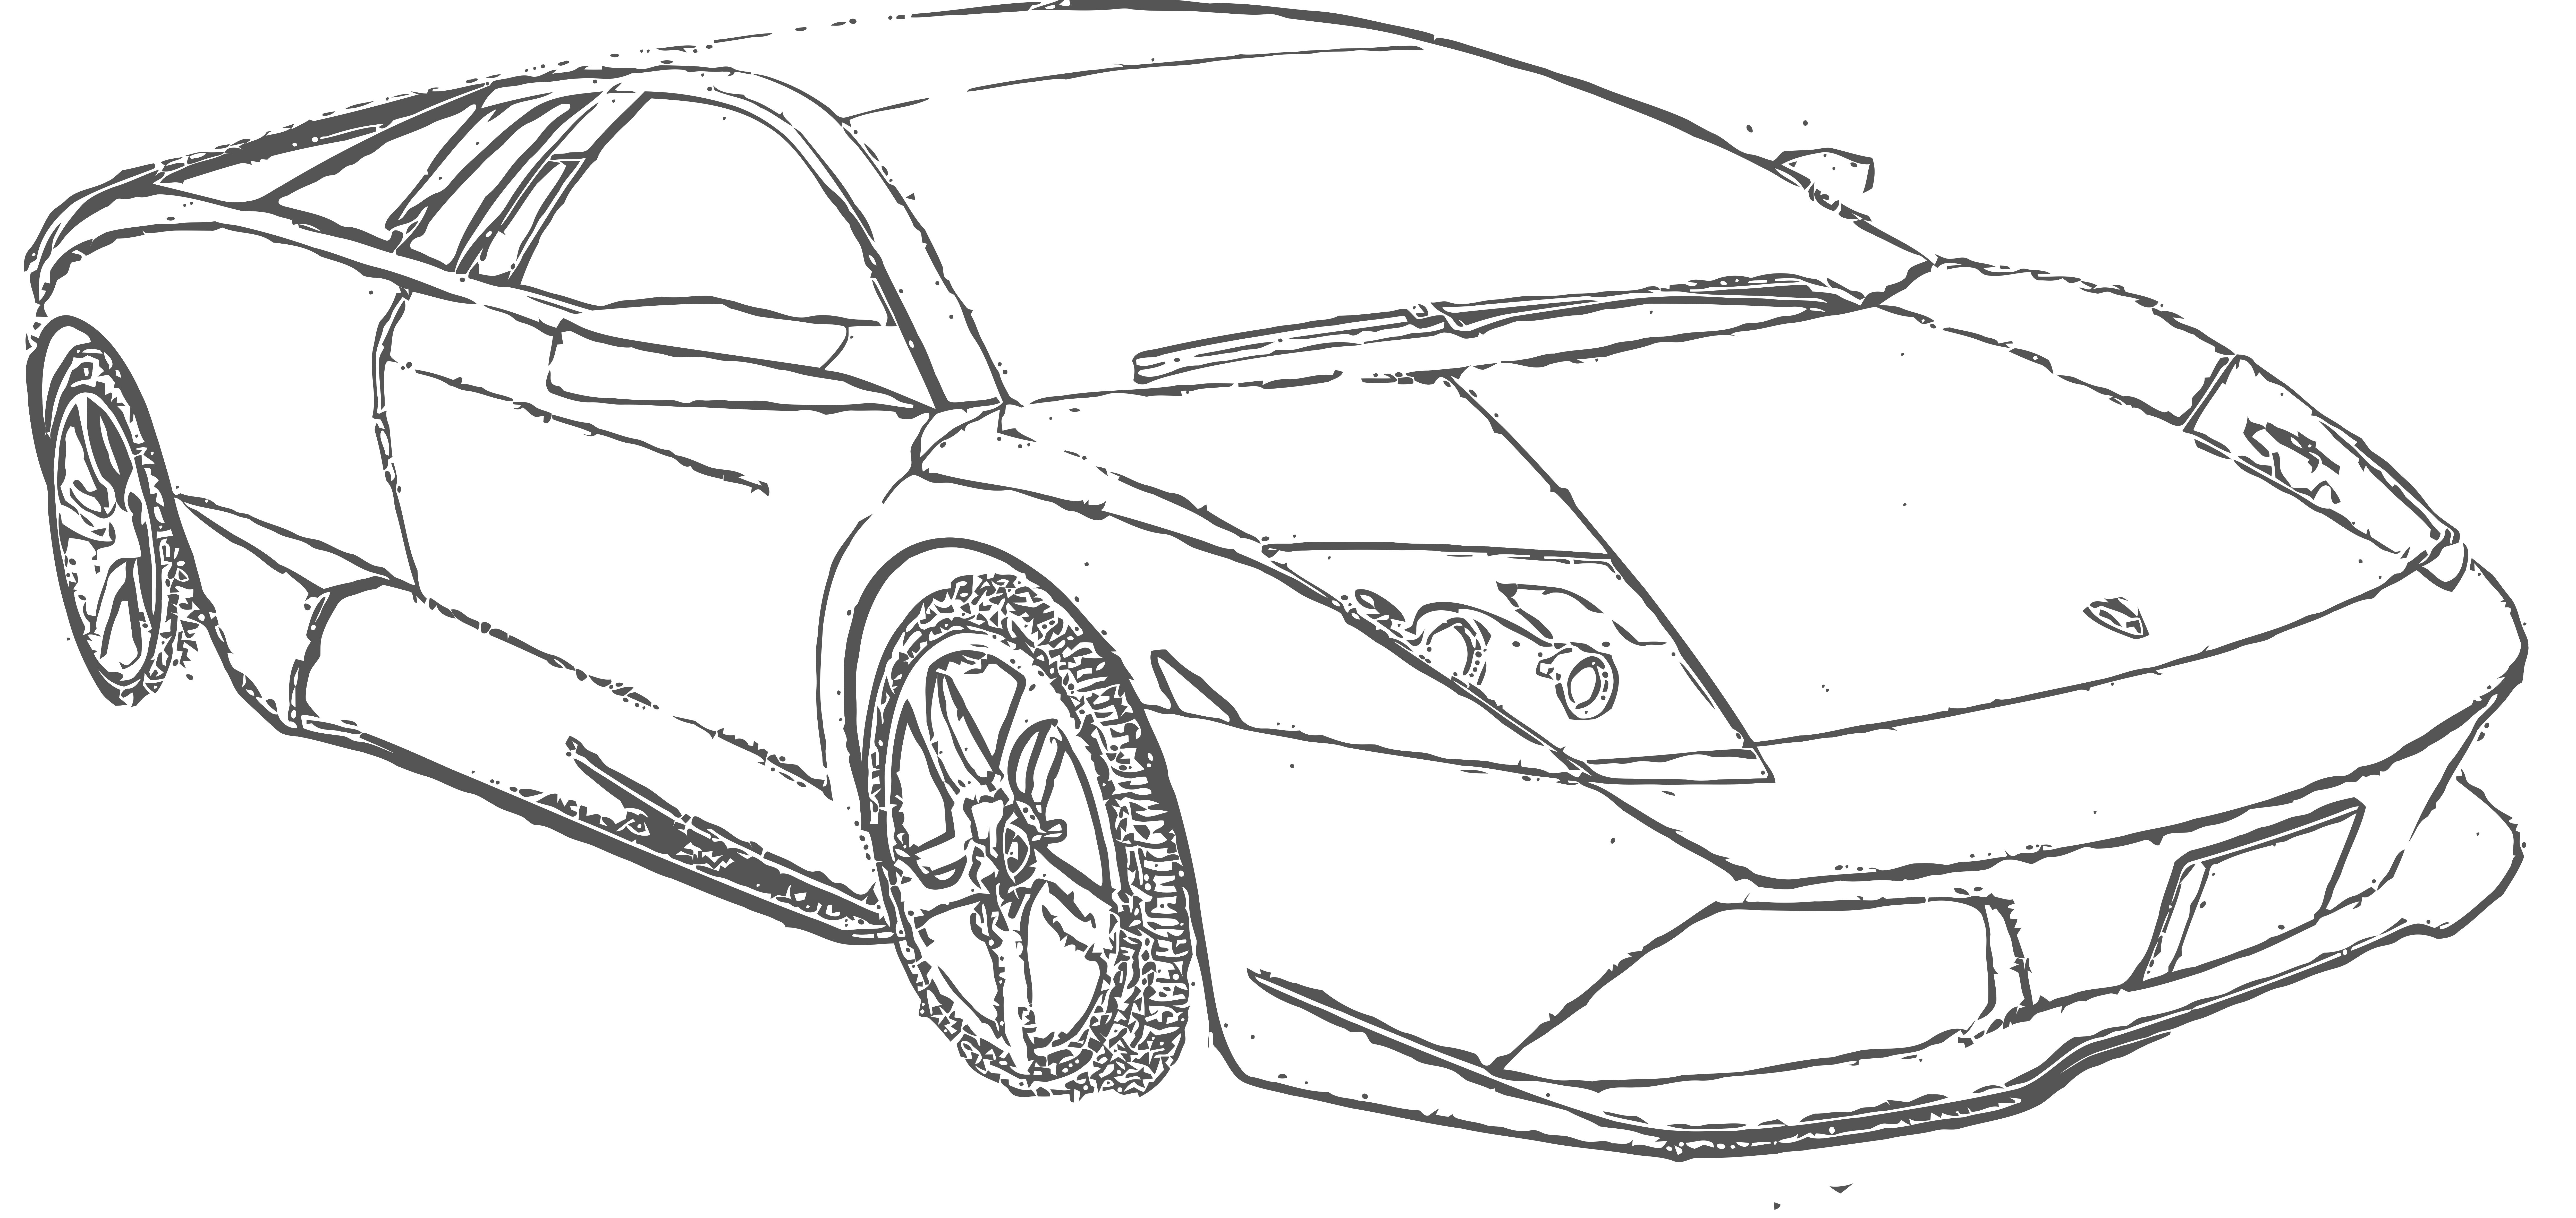 10000x4730 Free To Use Lamborghini Murcielago Lineart By E A 2